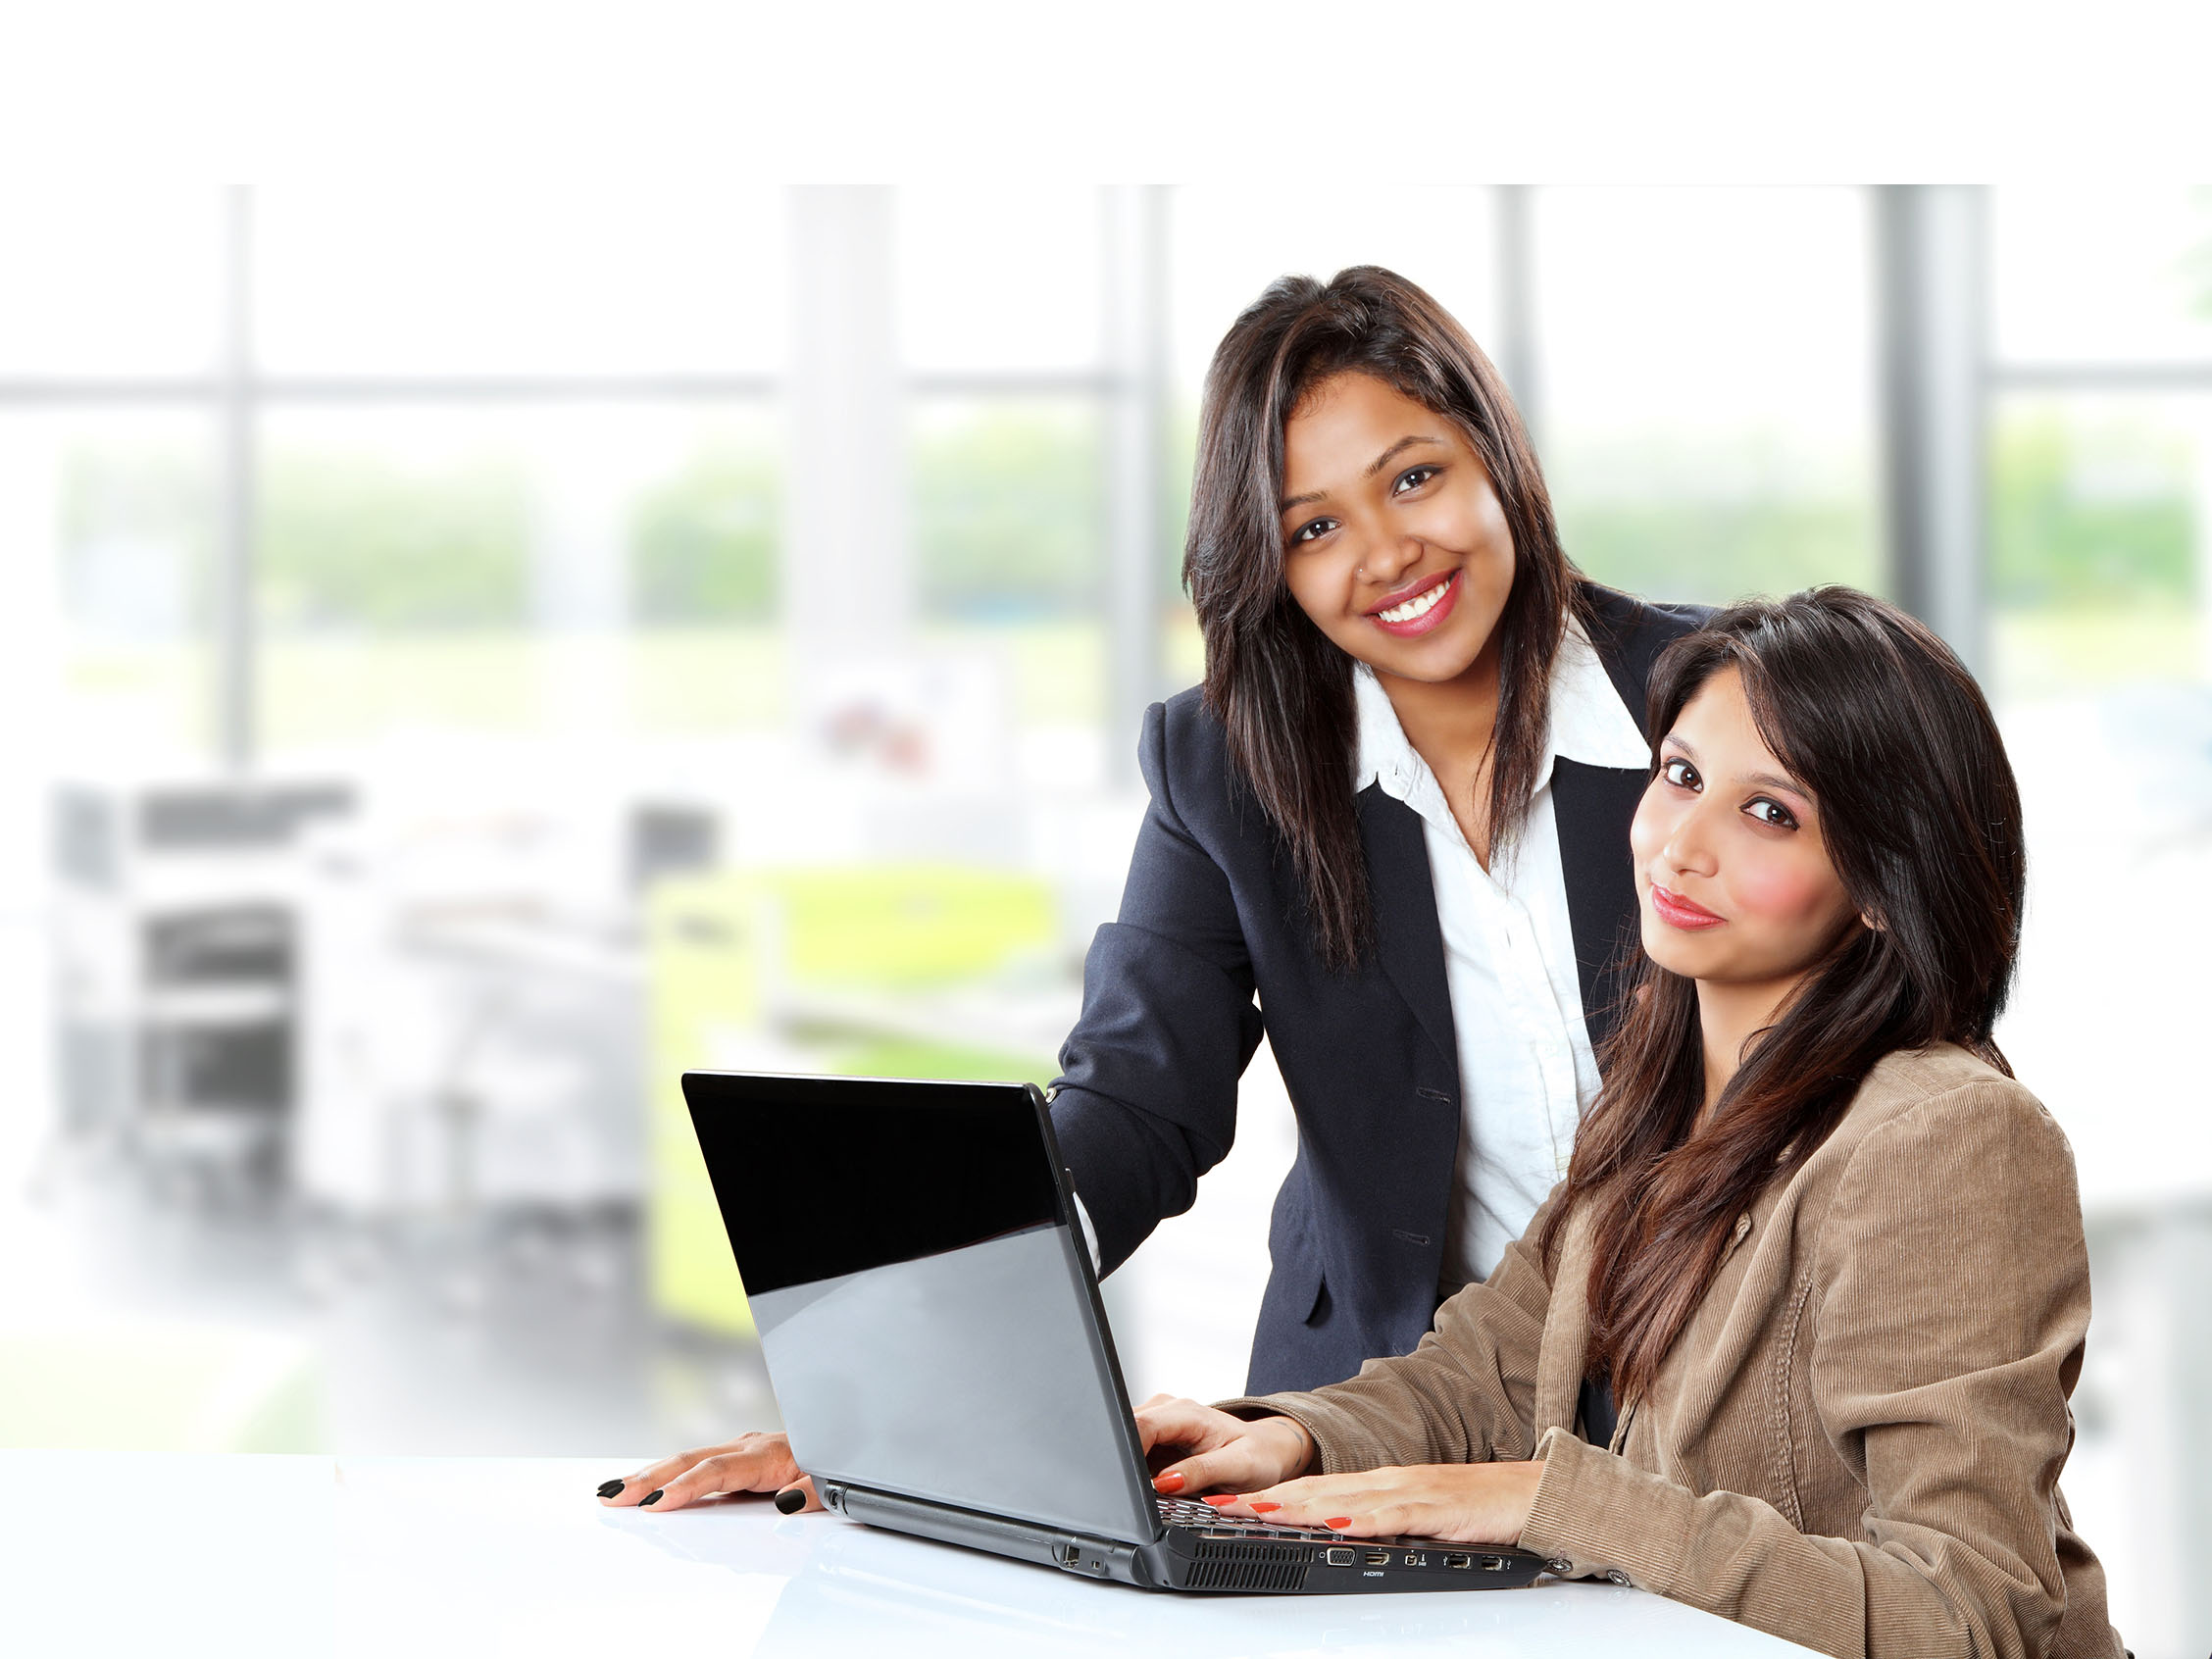 Business women at computer